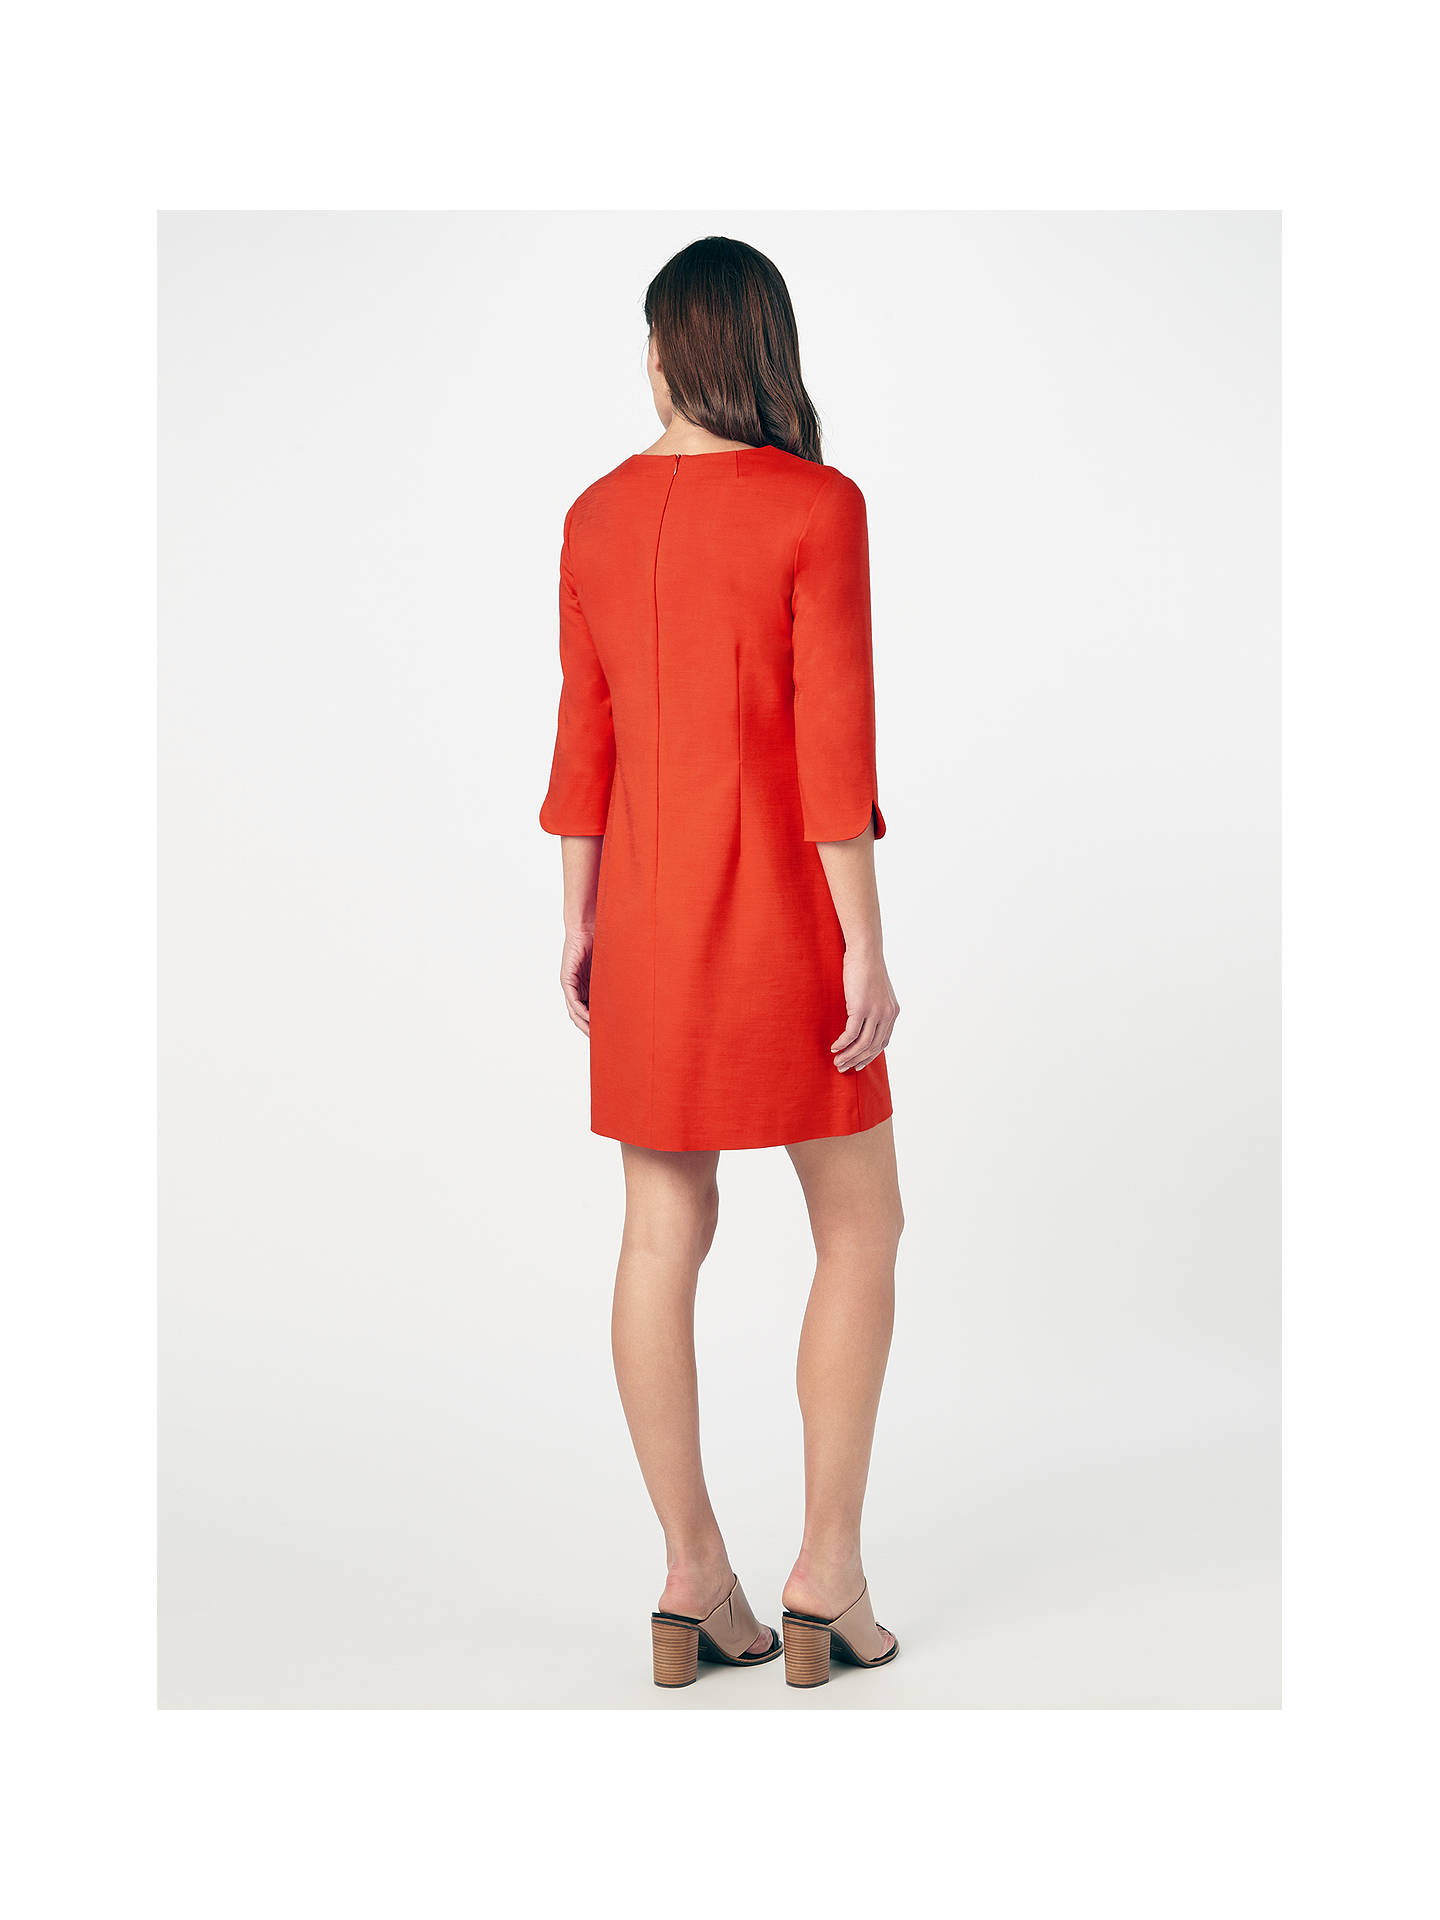 cbb56d756c9 Buy Phase Eight Ponte Zip Saphire Tunic Dress, Tomato, 8 Online at  johnlewis.